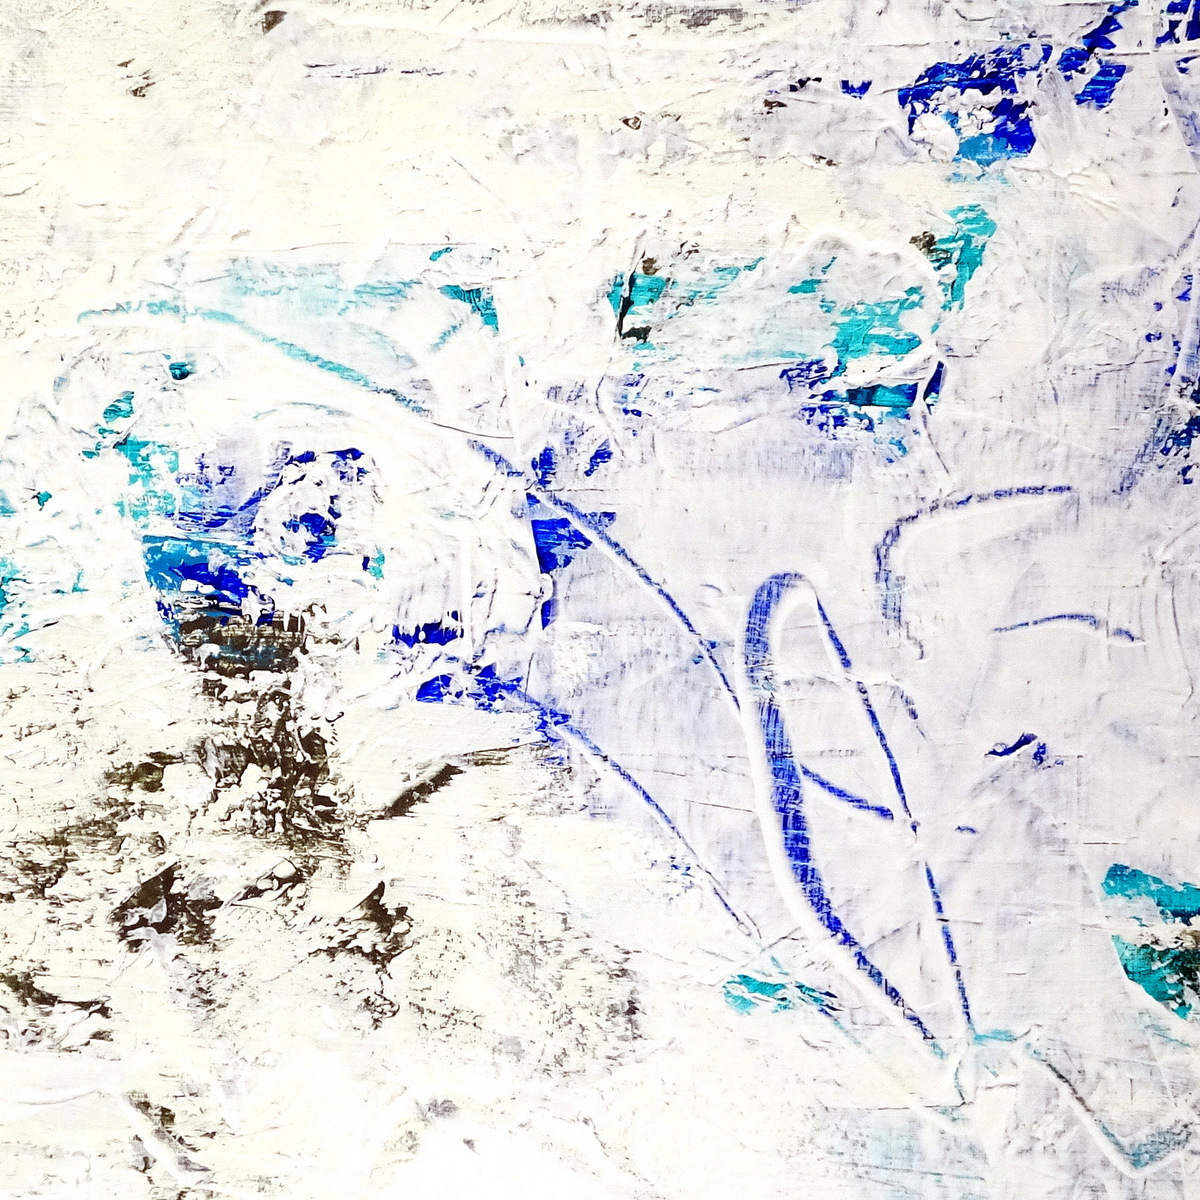 Abstract Expressionist Paintings, Bill Boyd, Black Mountain, NC-022.JPG